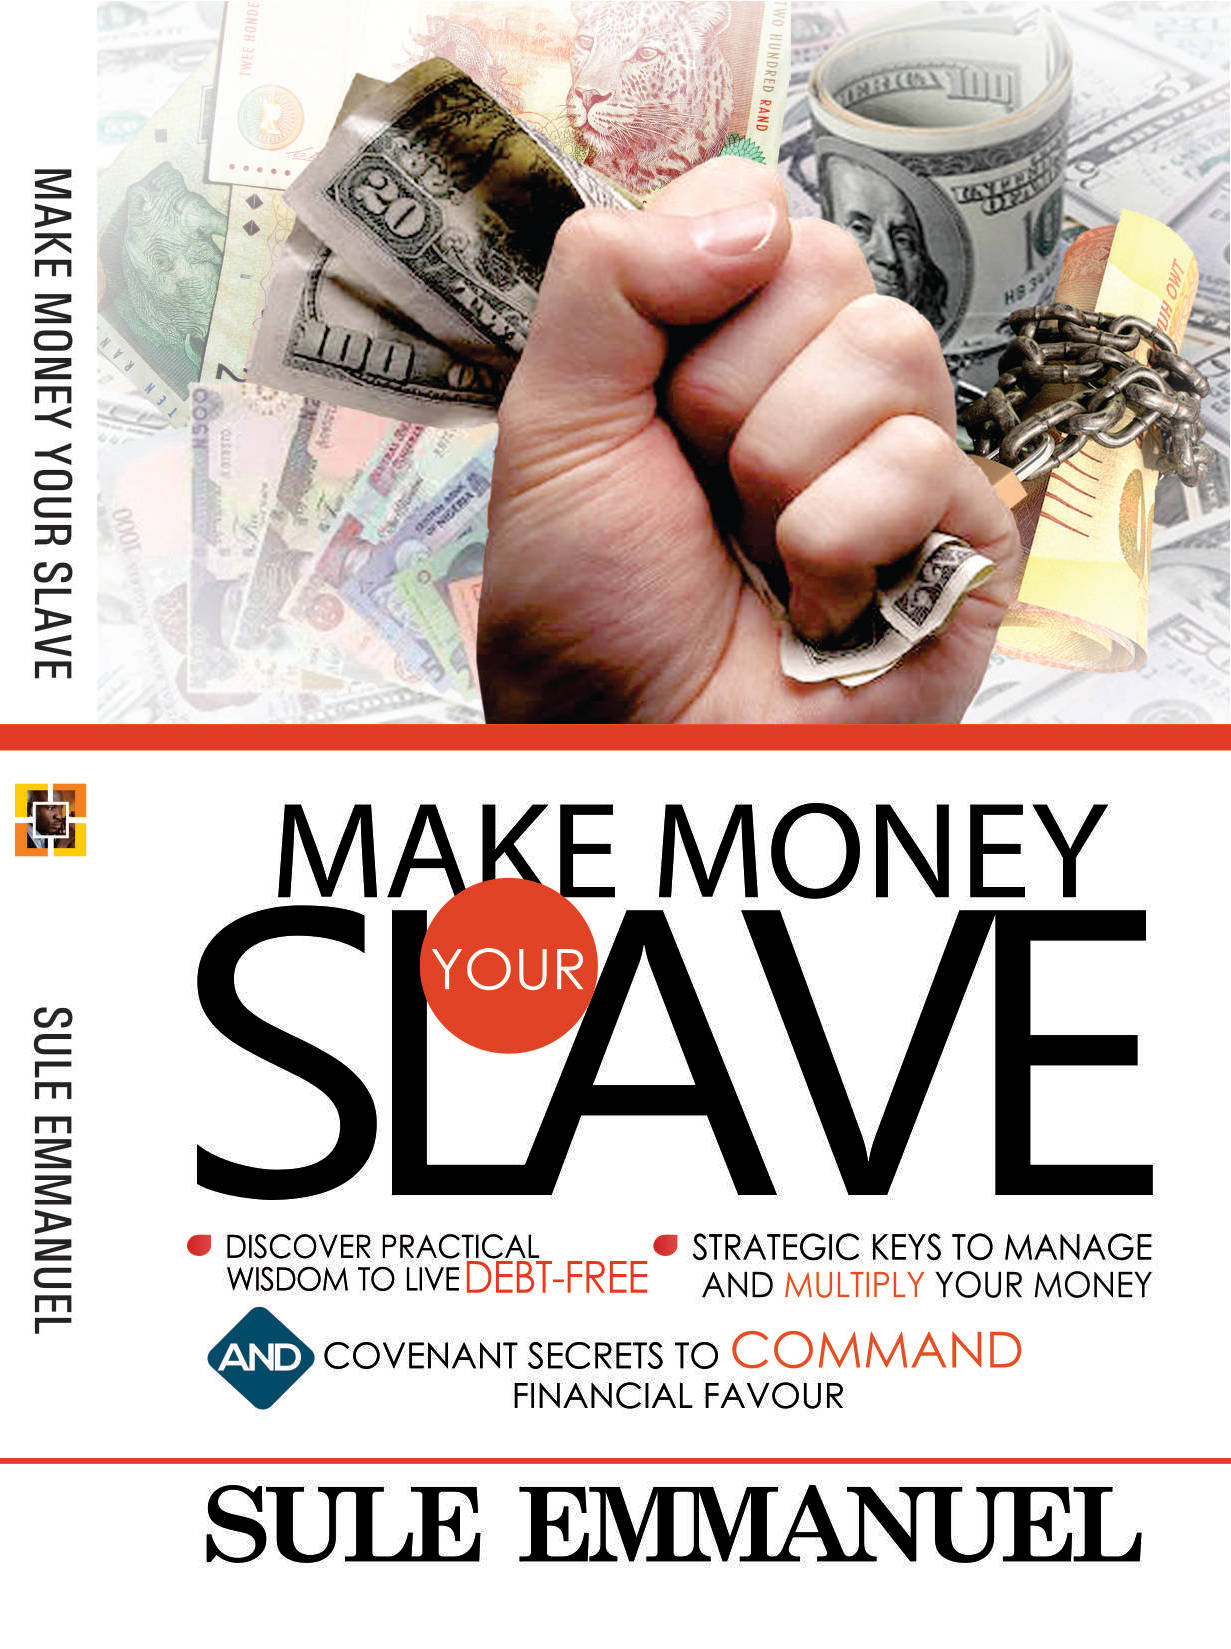 I Am Your Slave Now Do What I Say By Anthony Madrid - The